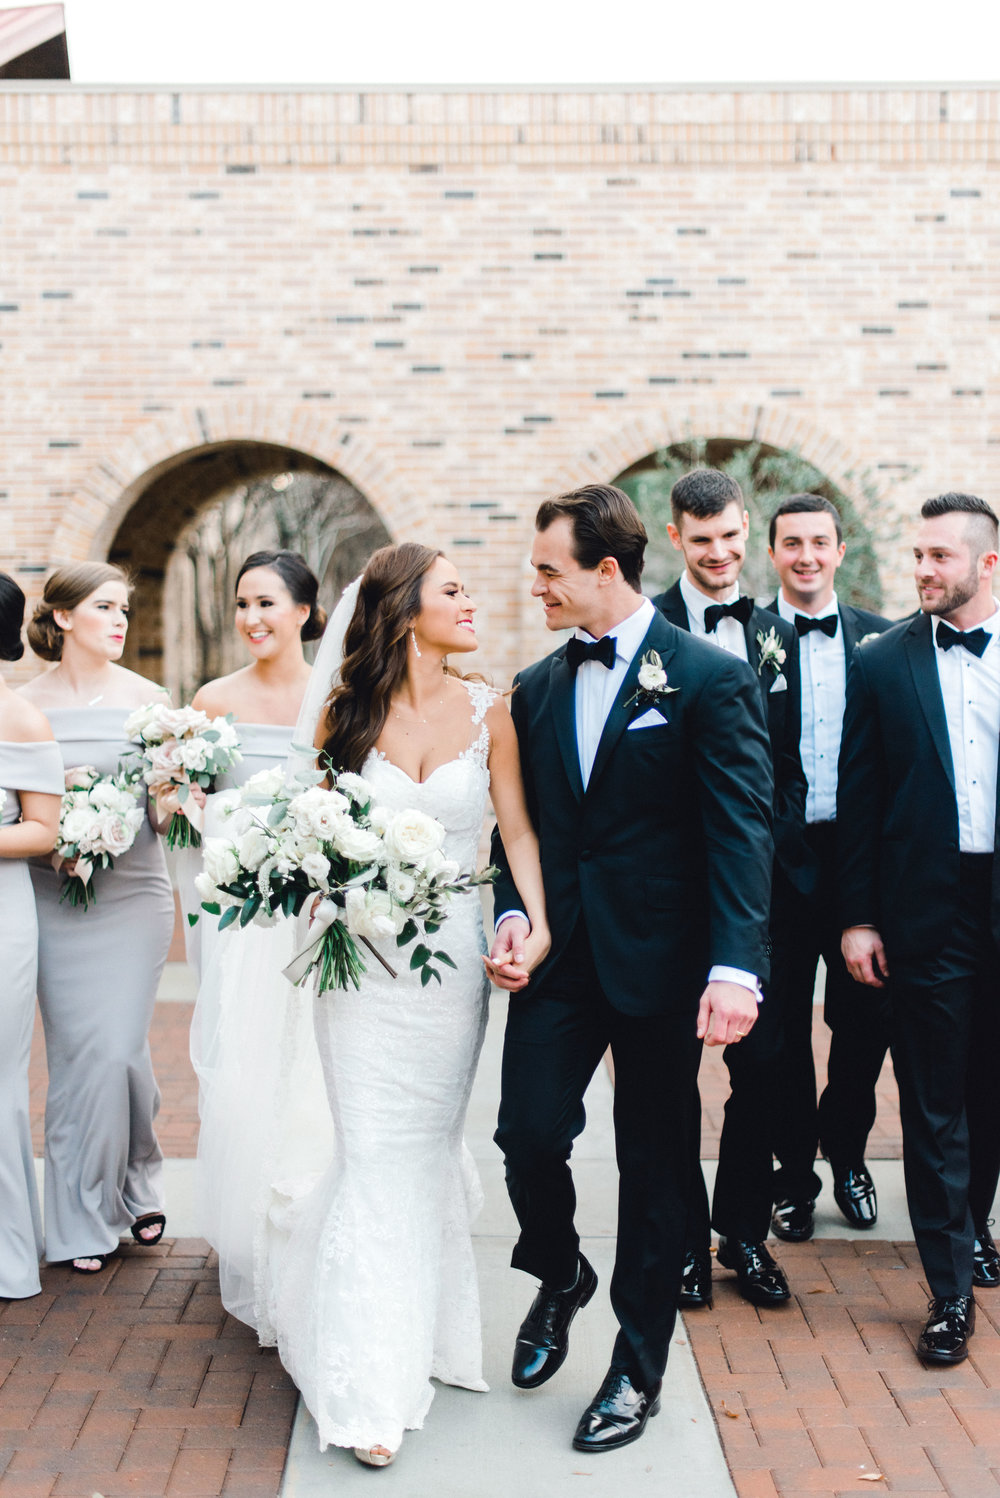 Bride and groom, photographed in Rice University by Josh and Dana Fernandez Photography. Flowers by Maxit Flower Design